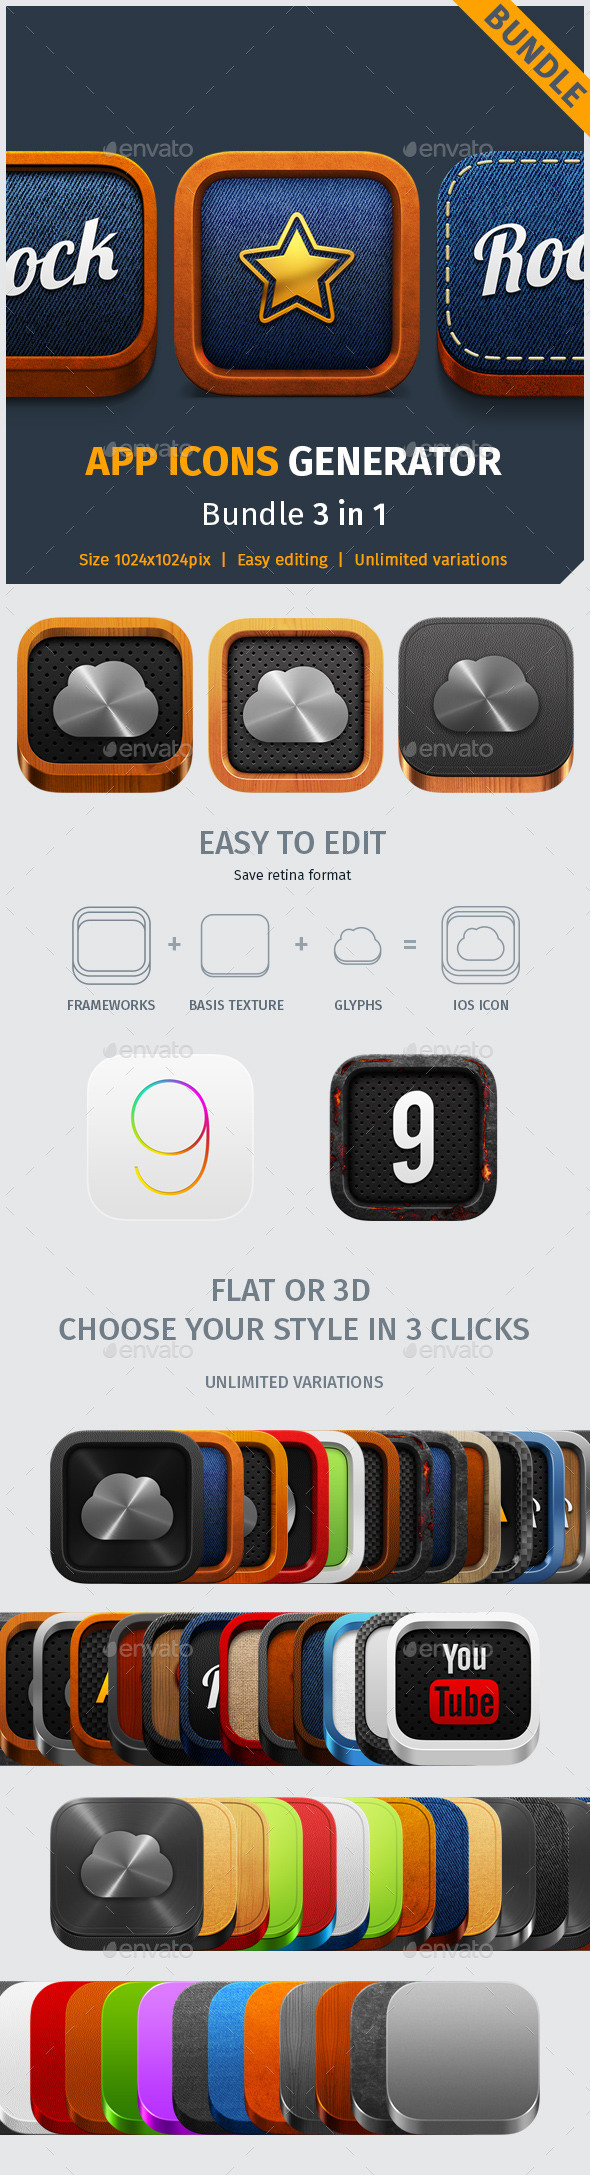 Icons Bundle: App Icons Generator 3 in 1 - Software Icons